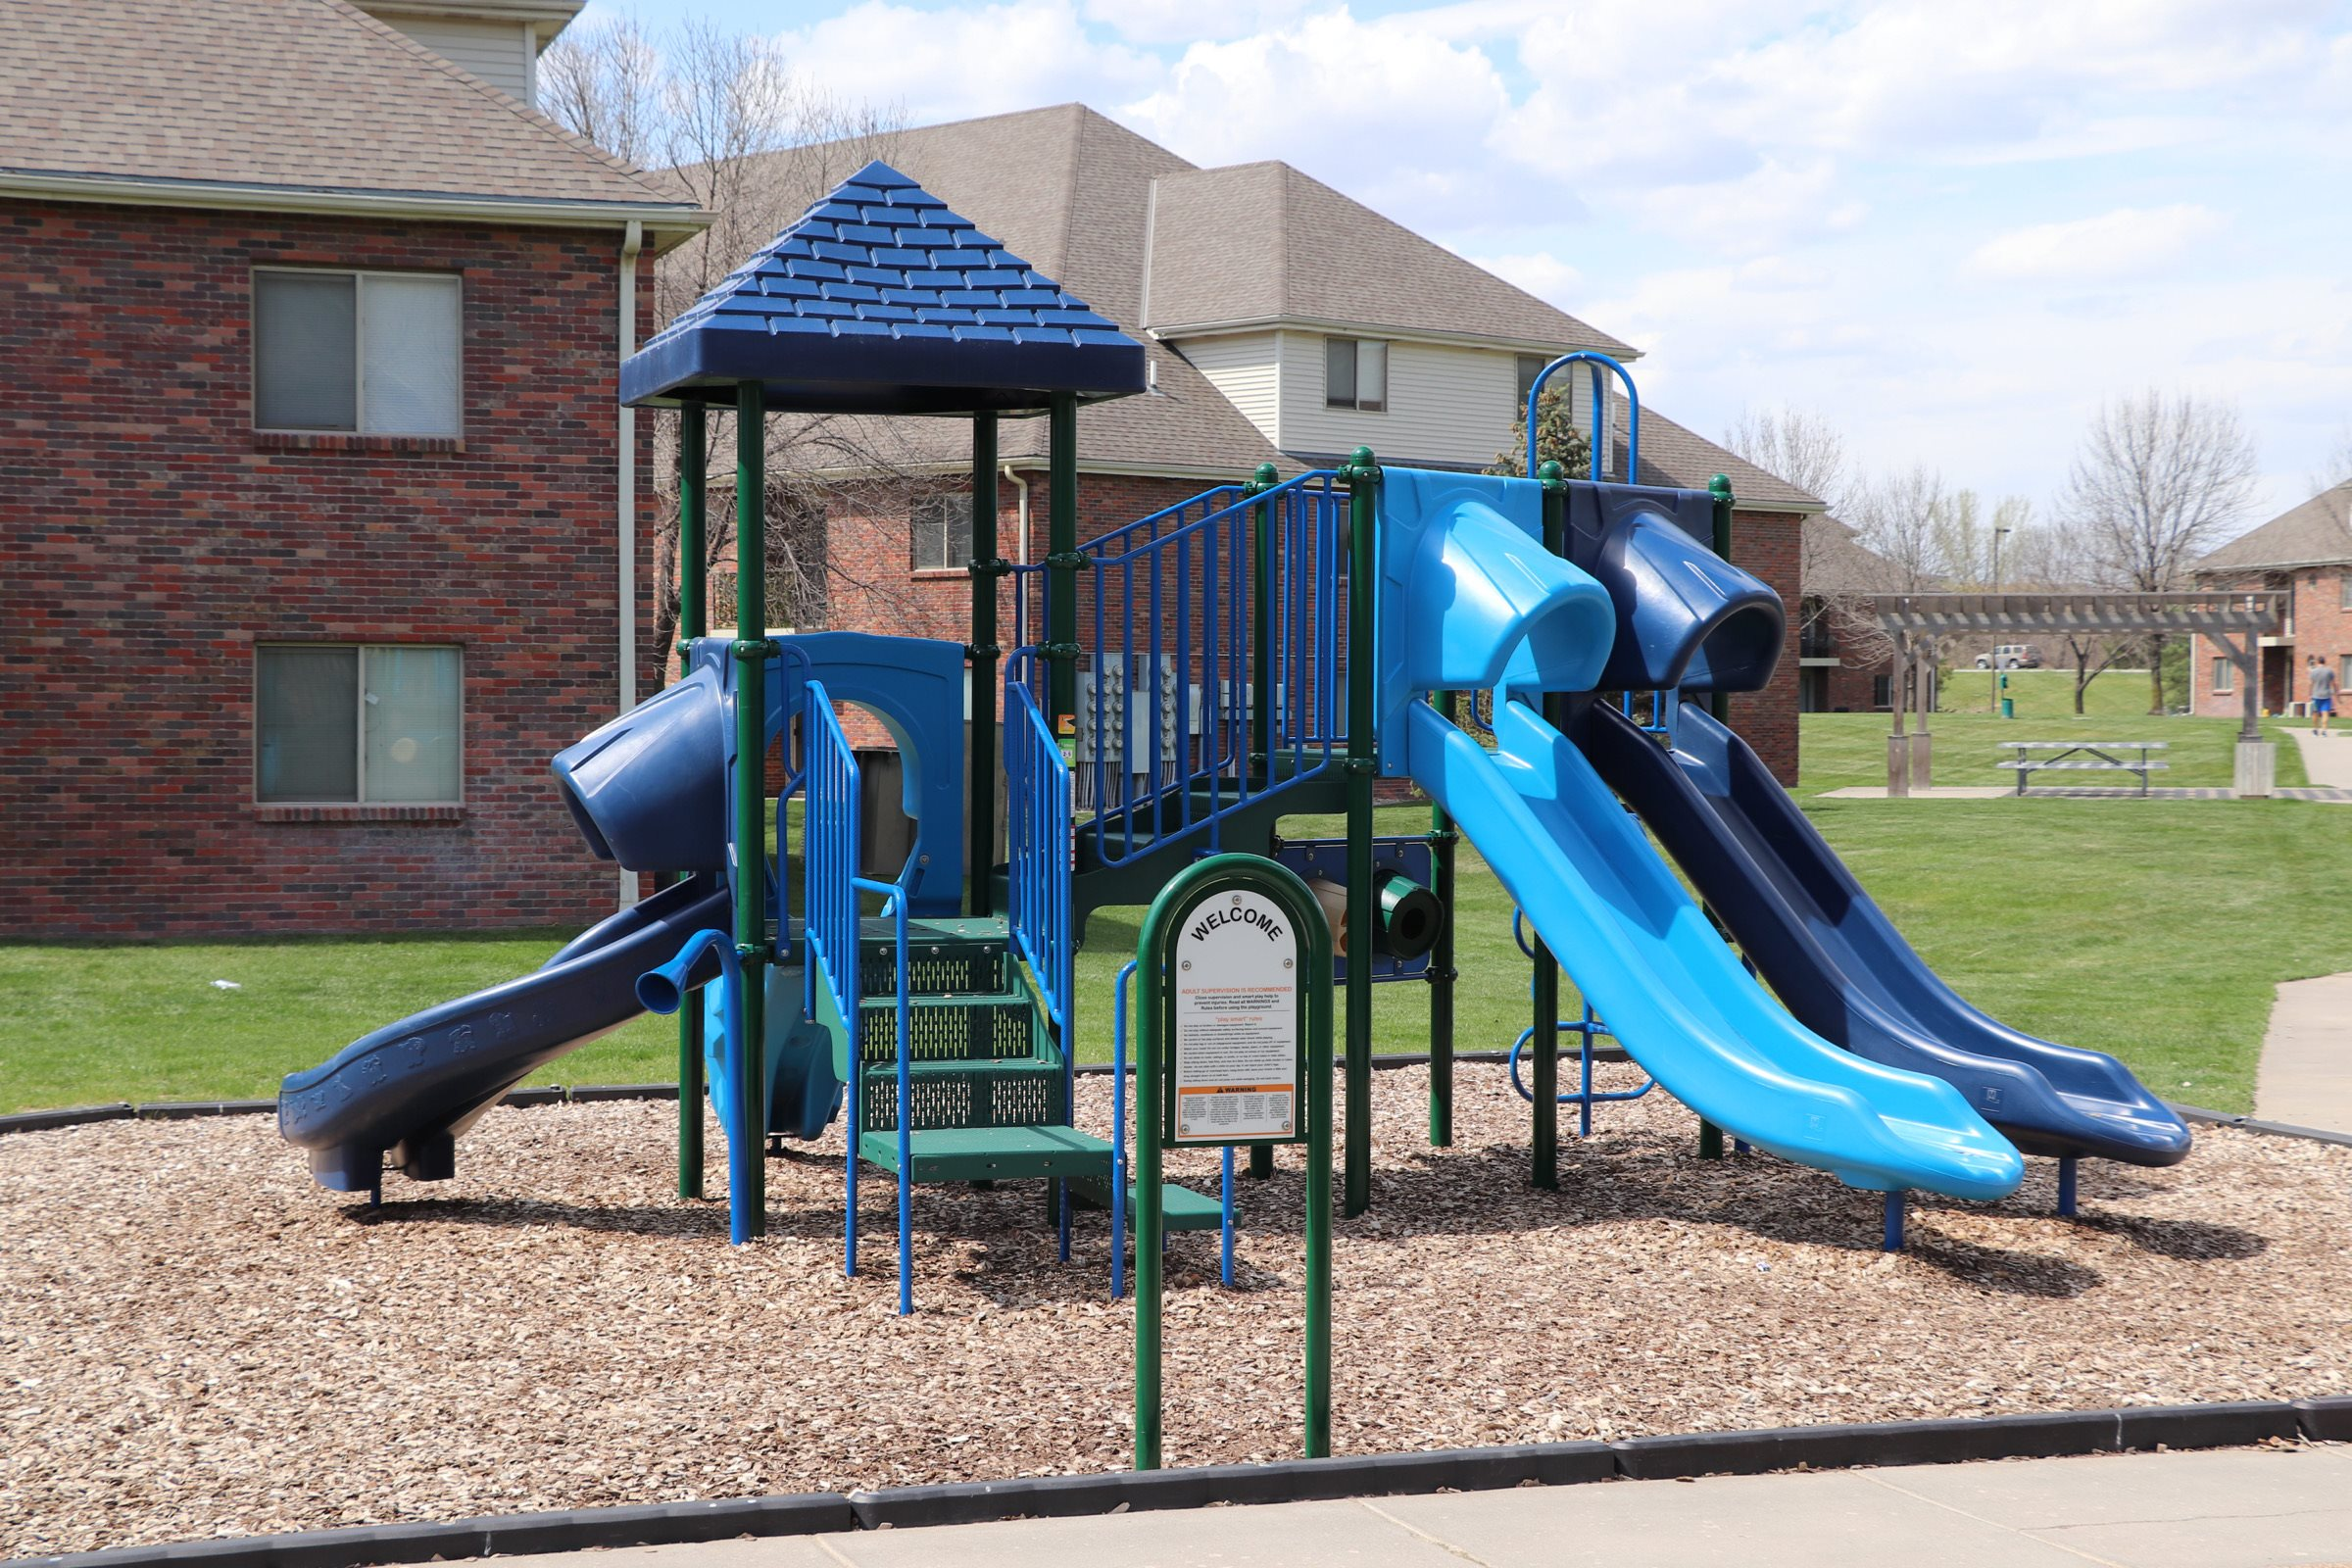 Children's playground with slides at Fountain Glen Apartments in Lincoln, NE